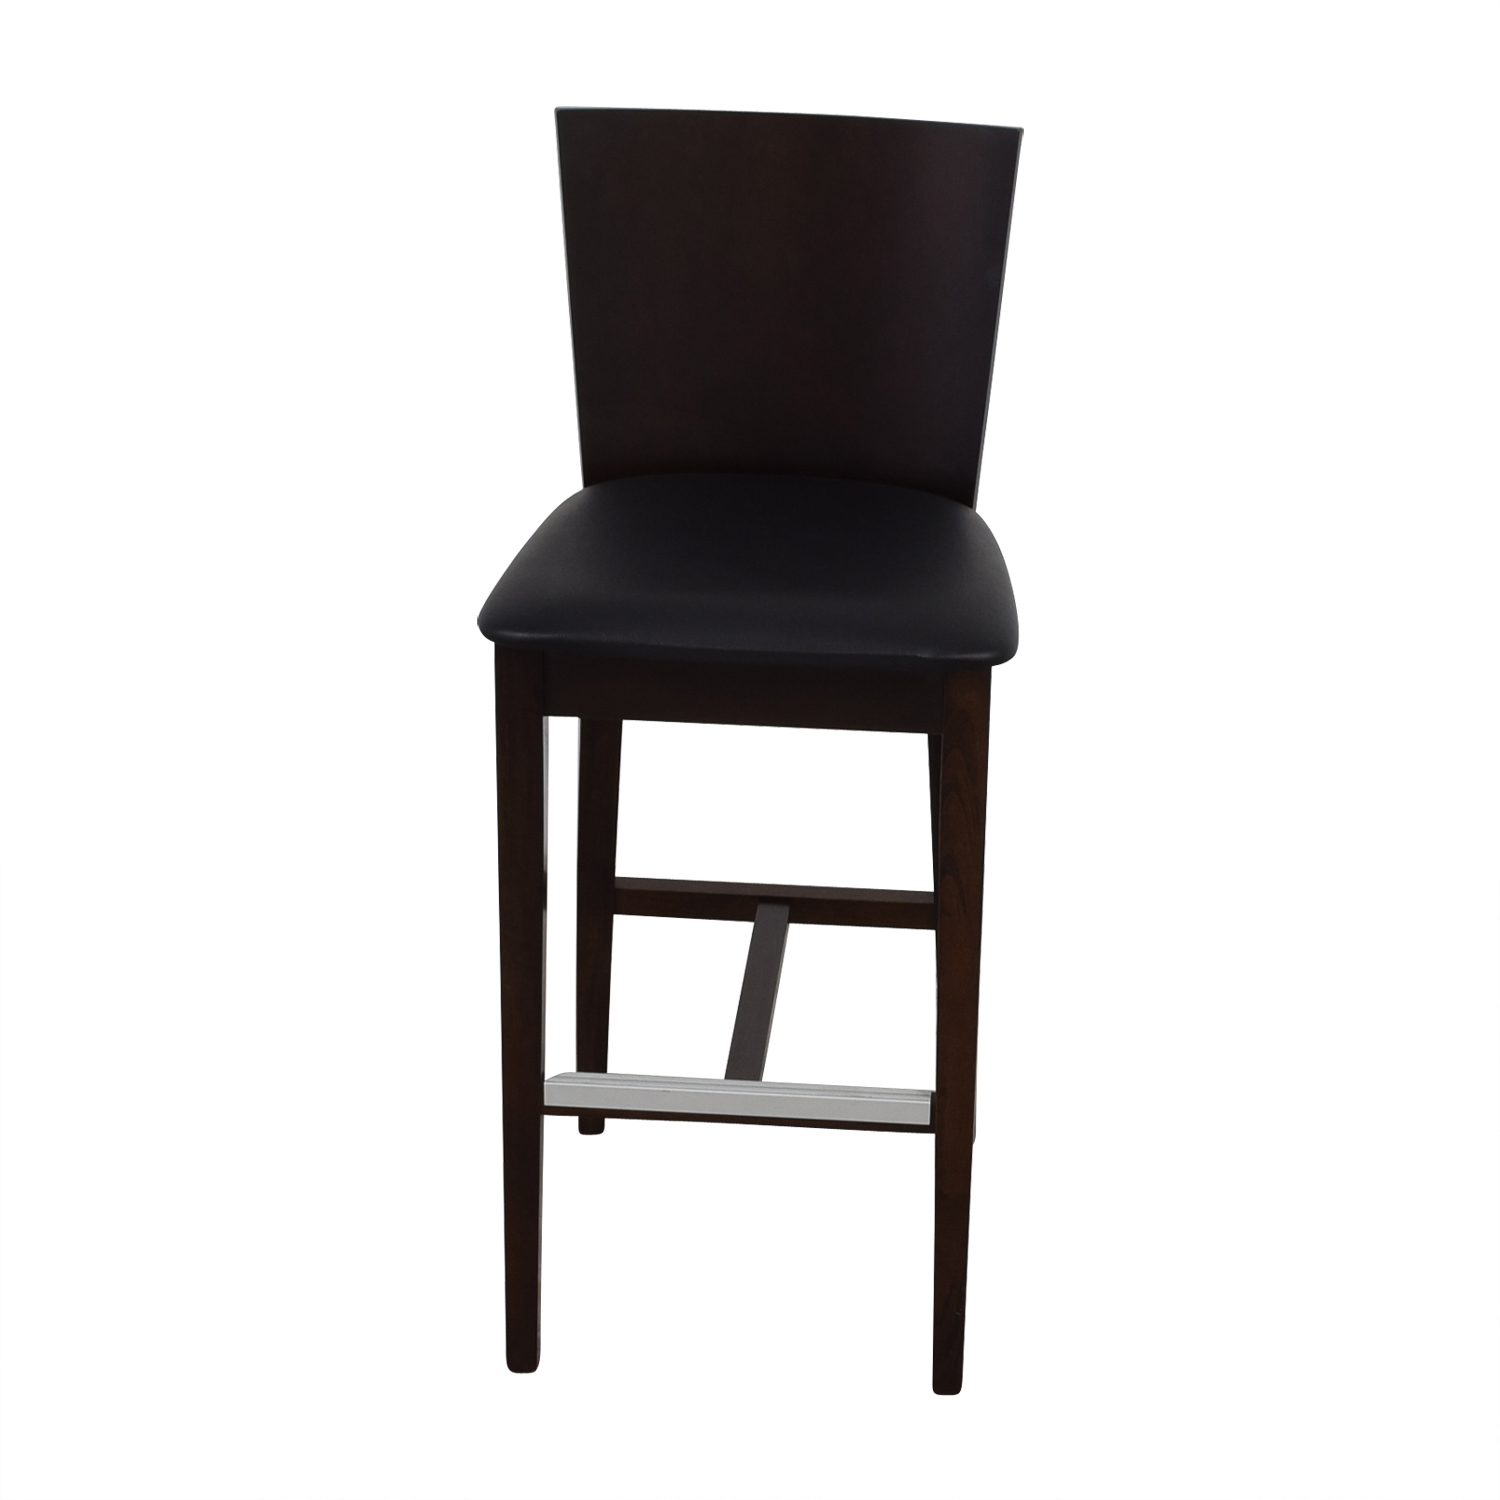 ... Buy Newspec Newspec Black And Cherry Wood Bar Chair Online ...